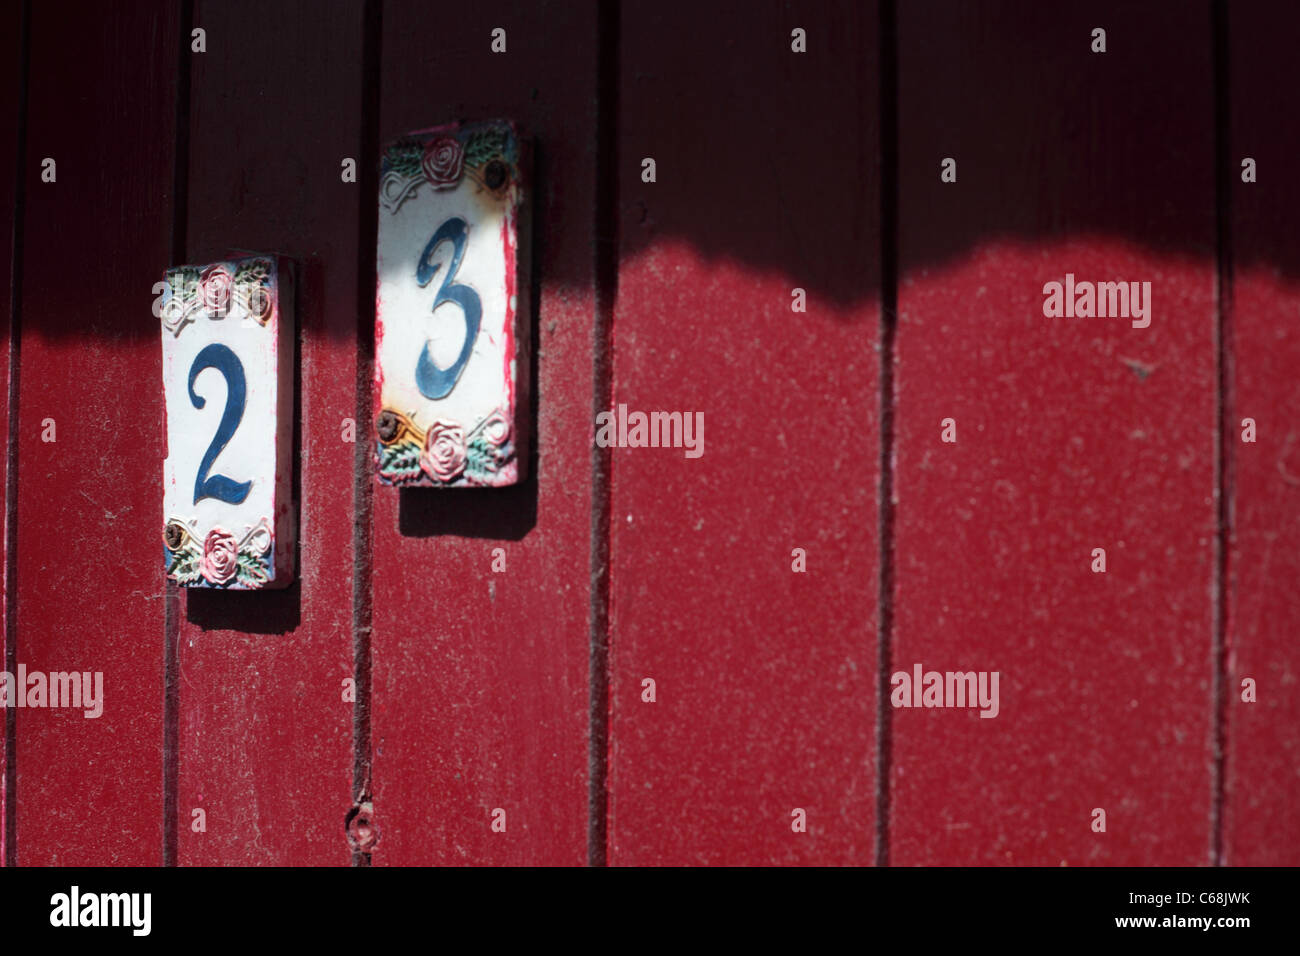 No.23 number 23 on a red door to a cottage in St Ives, Cornwall - Stock Image